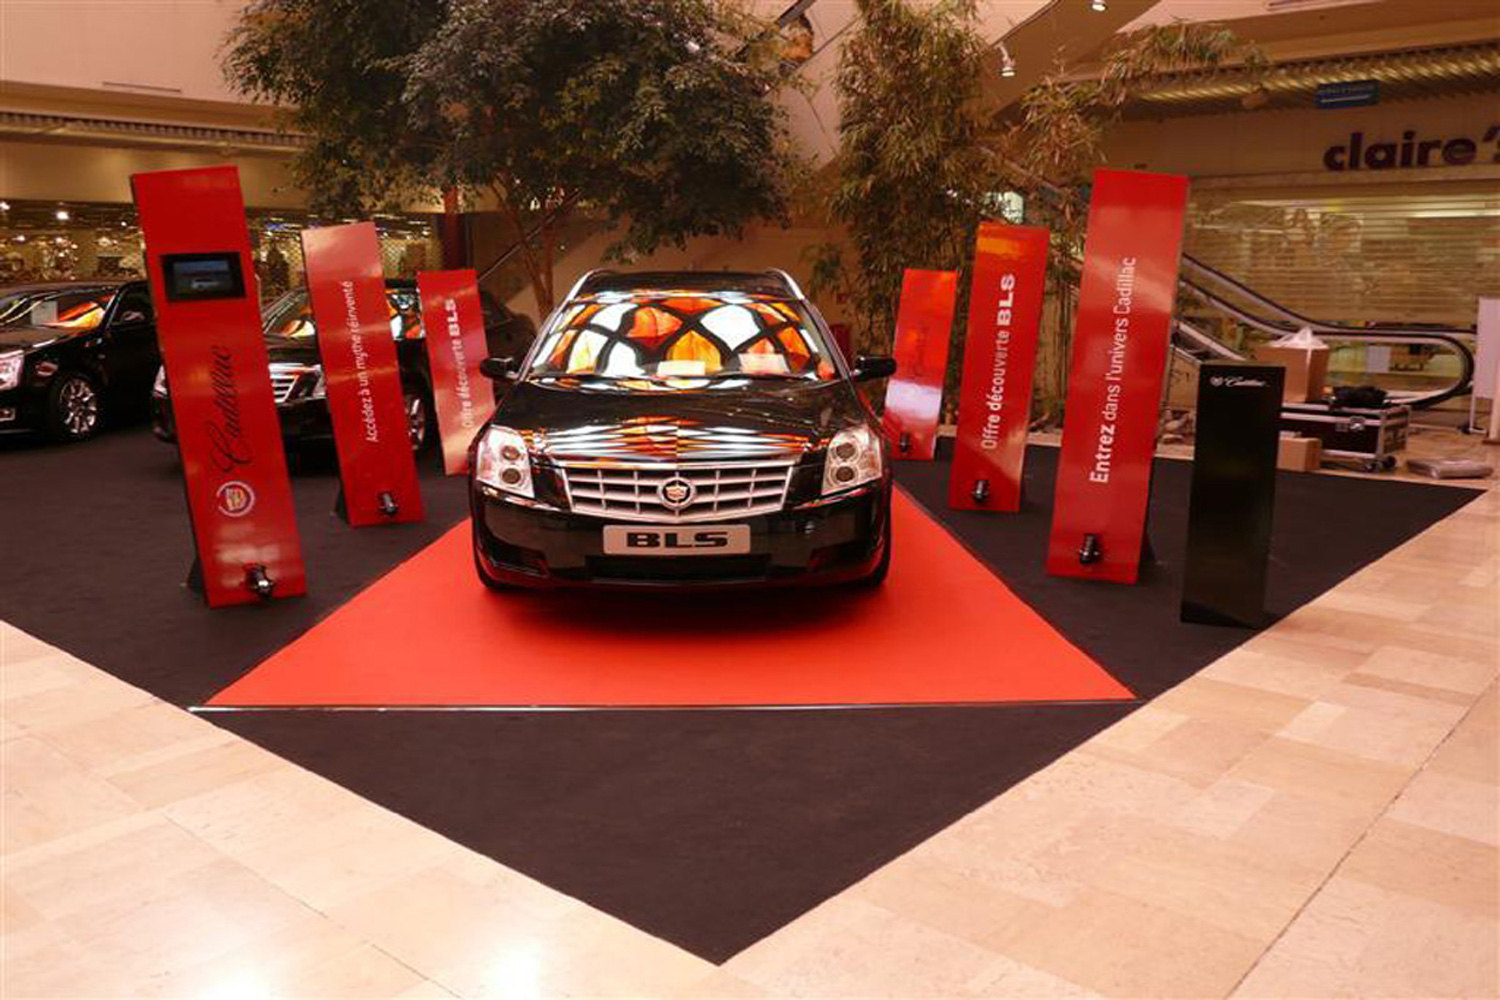 CadillacProject2008>stage4.jpg